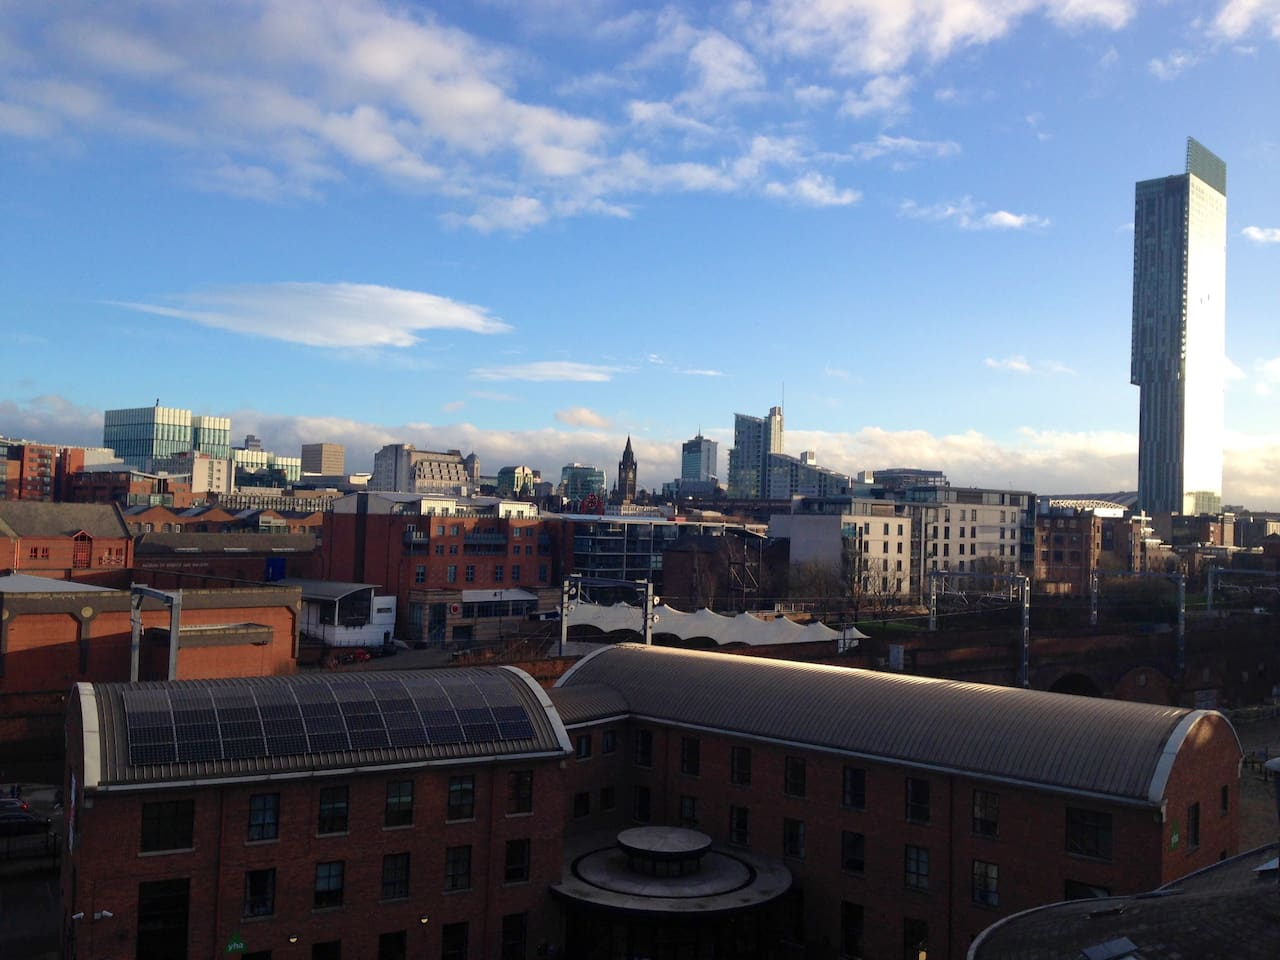 Stunning Manchester skyline view from balcony